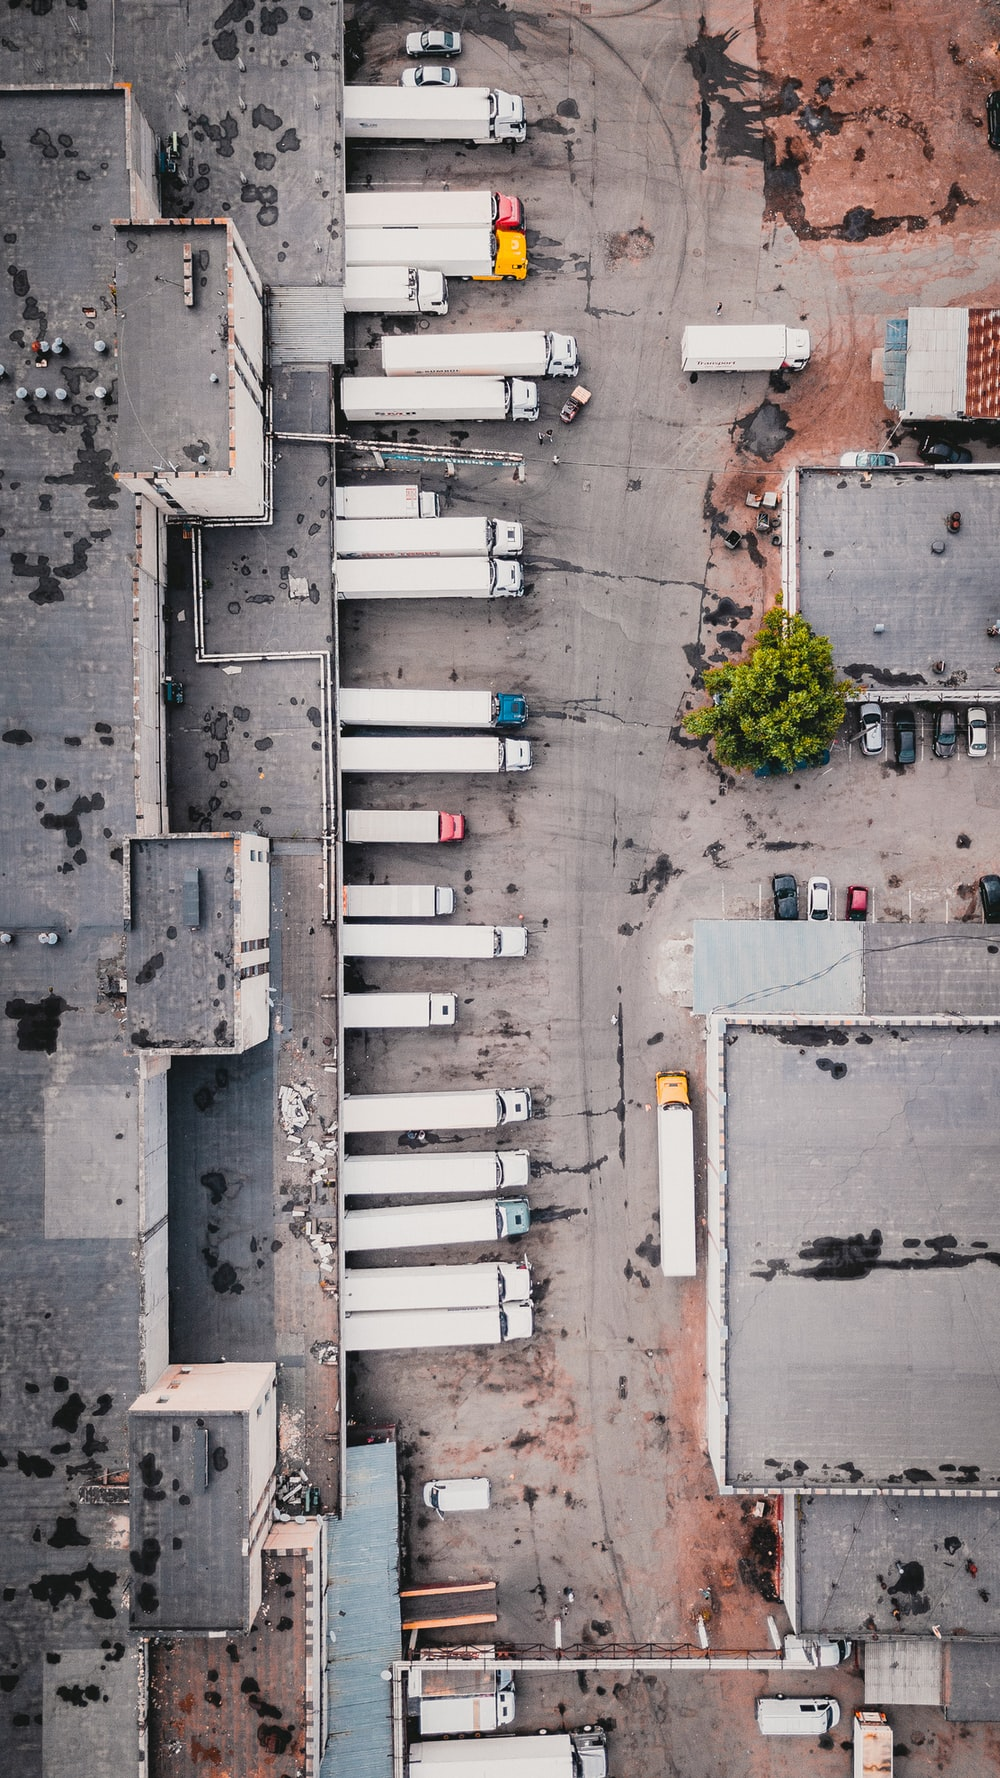 aerial view of trucks on gray commercial building during daytime